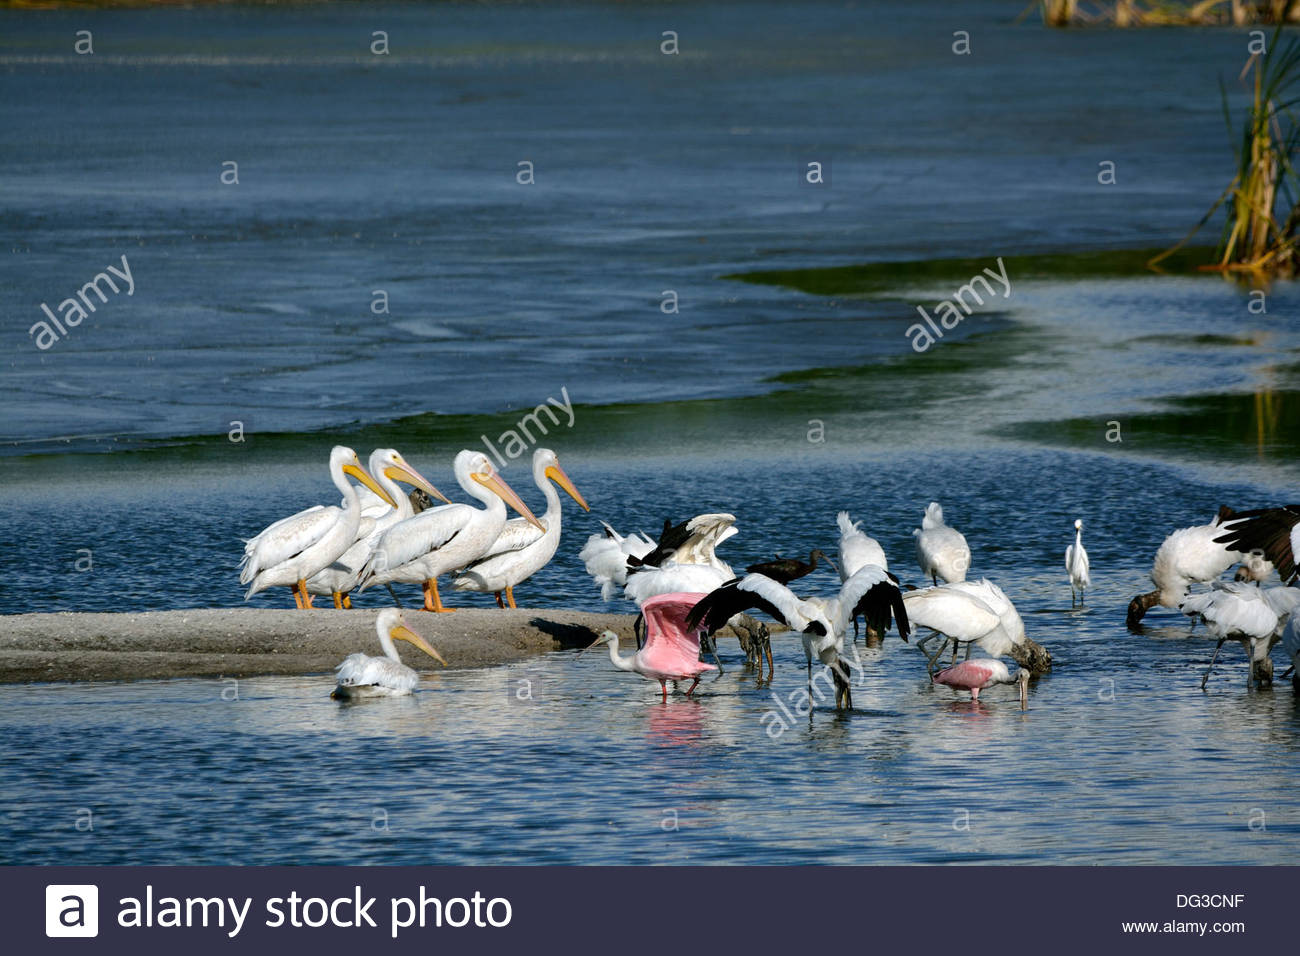 Group of White Pelicans on a Sandbar With  a Blue Water Background - Stock Image